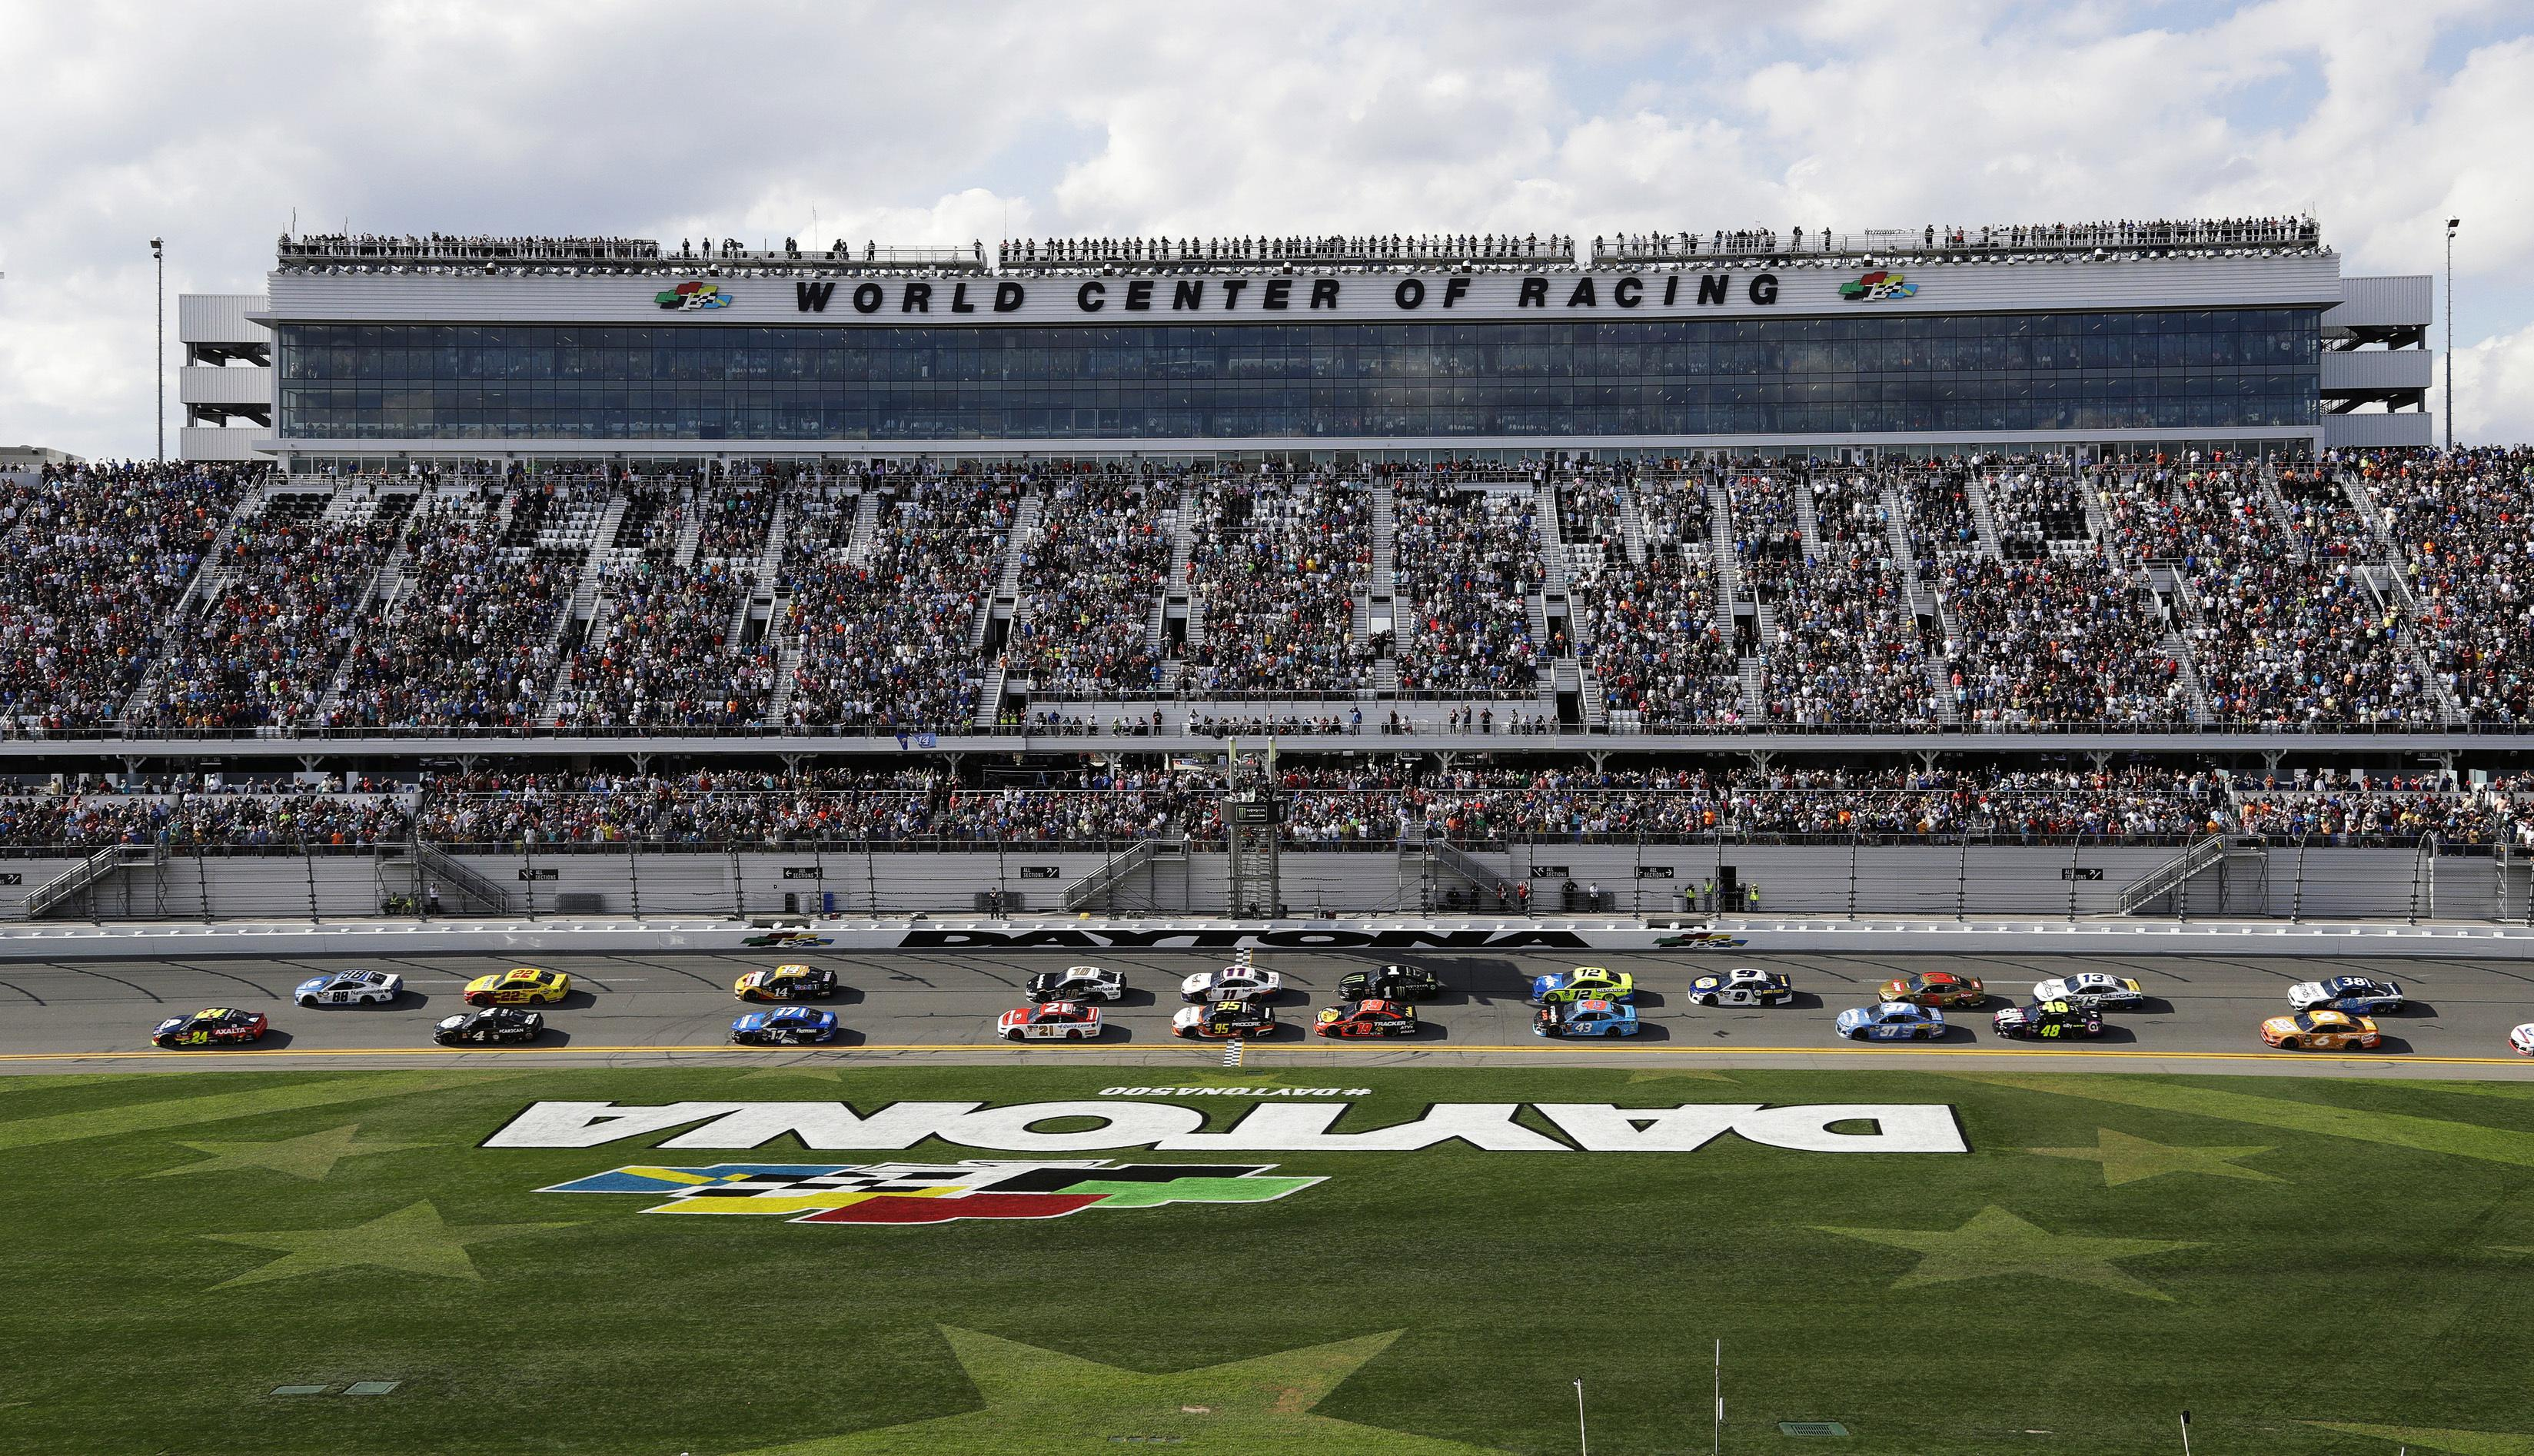 Daytona 500 to be held with 'limited' fans in 2021 because of COVID-19 pandemic